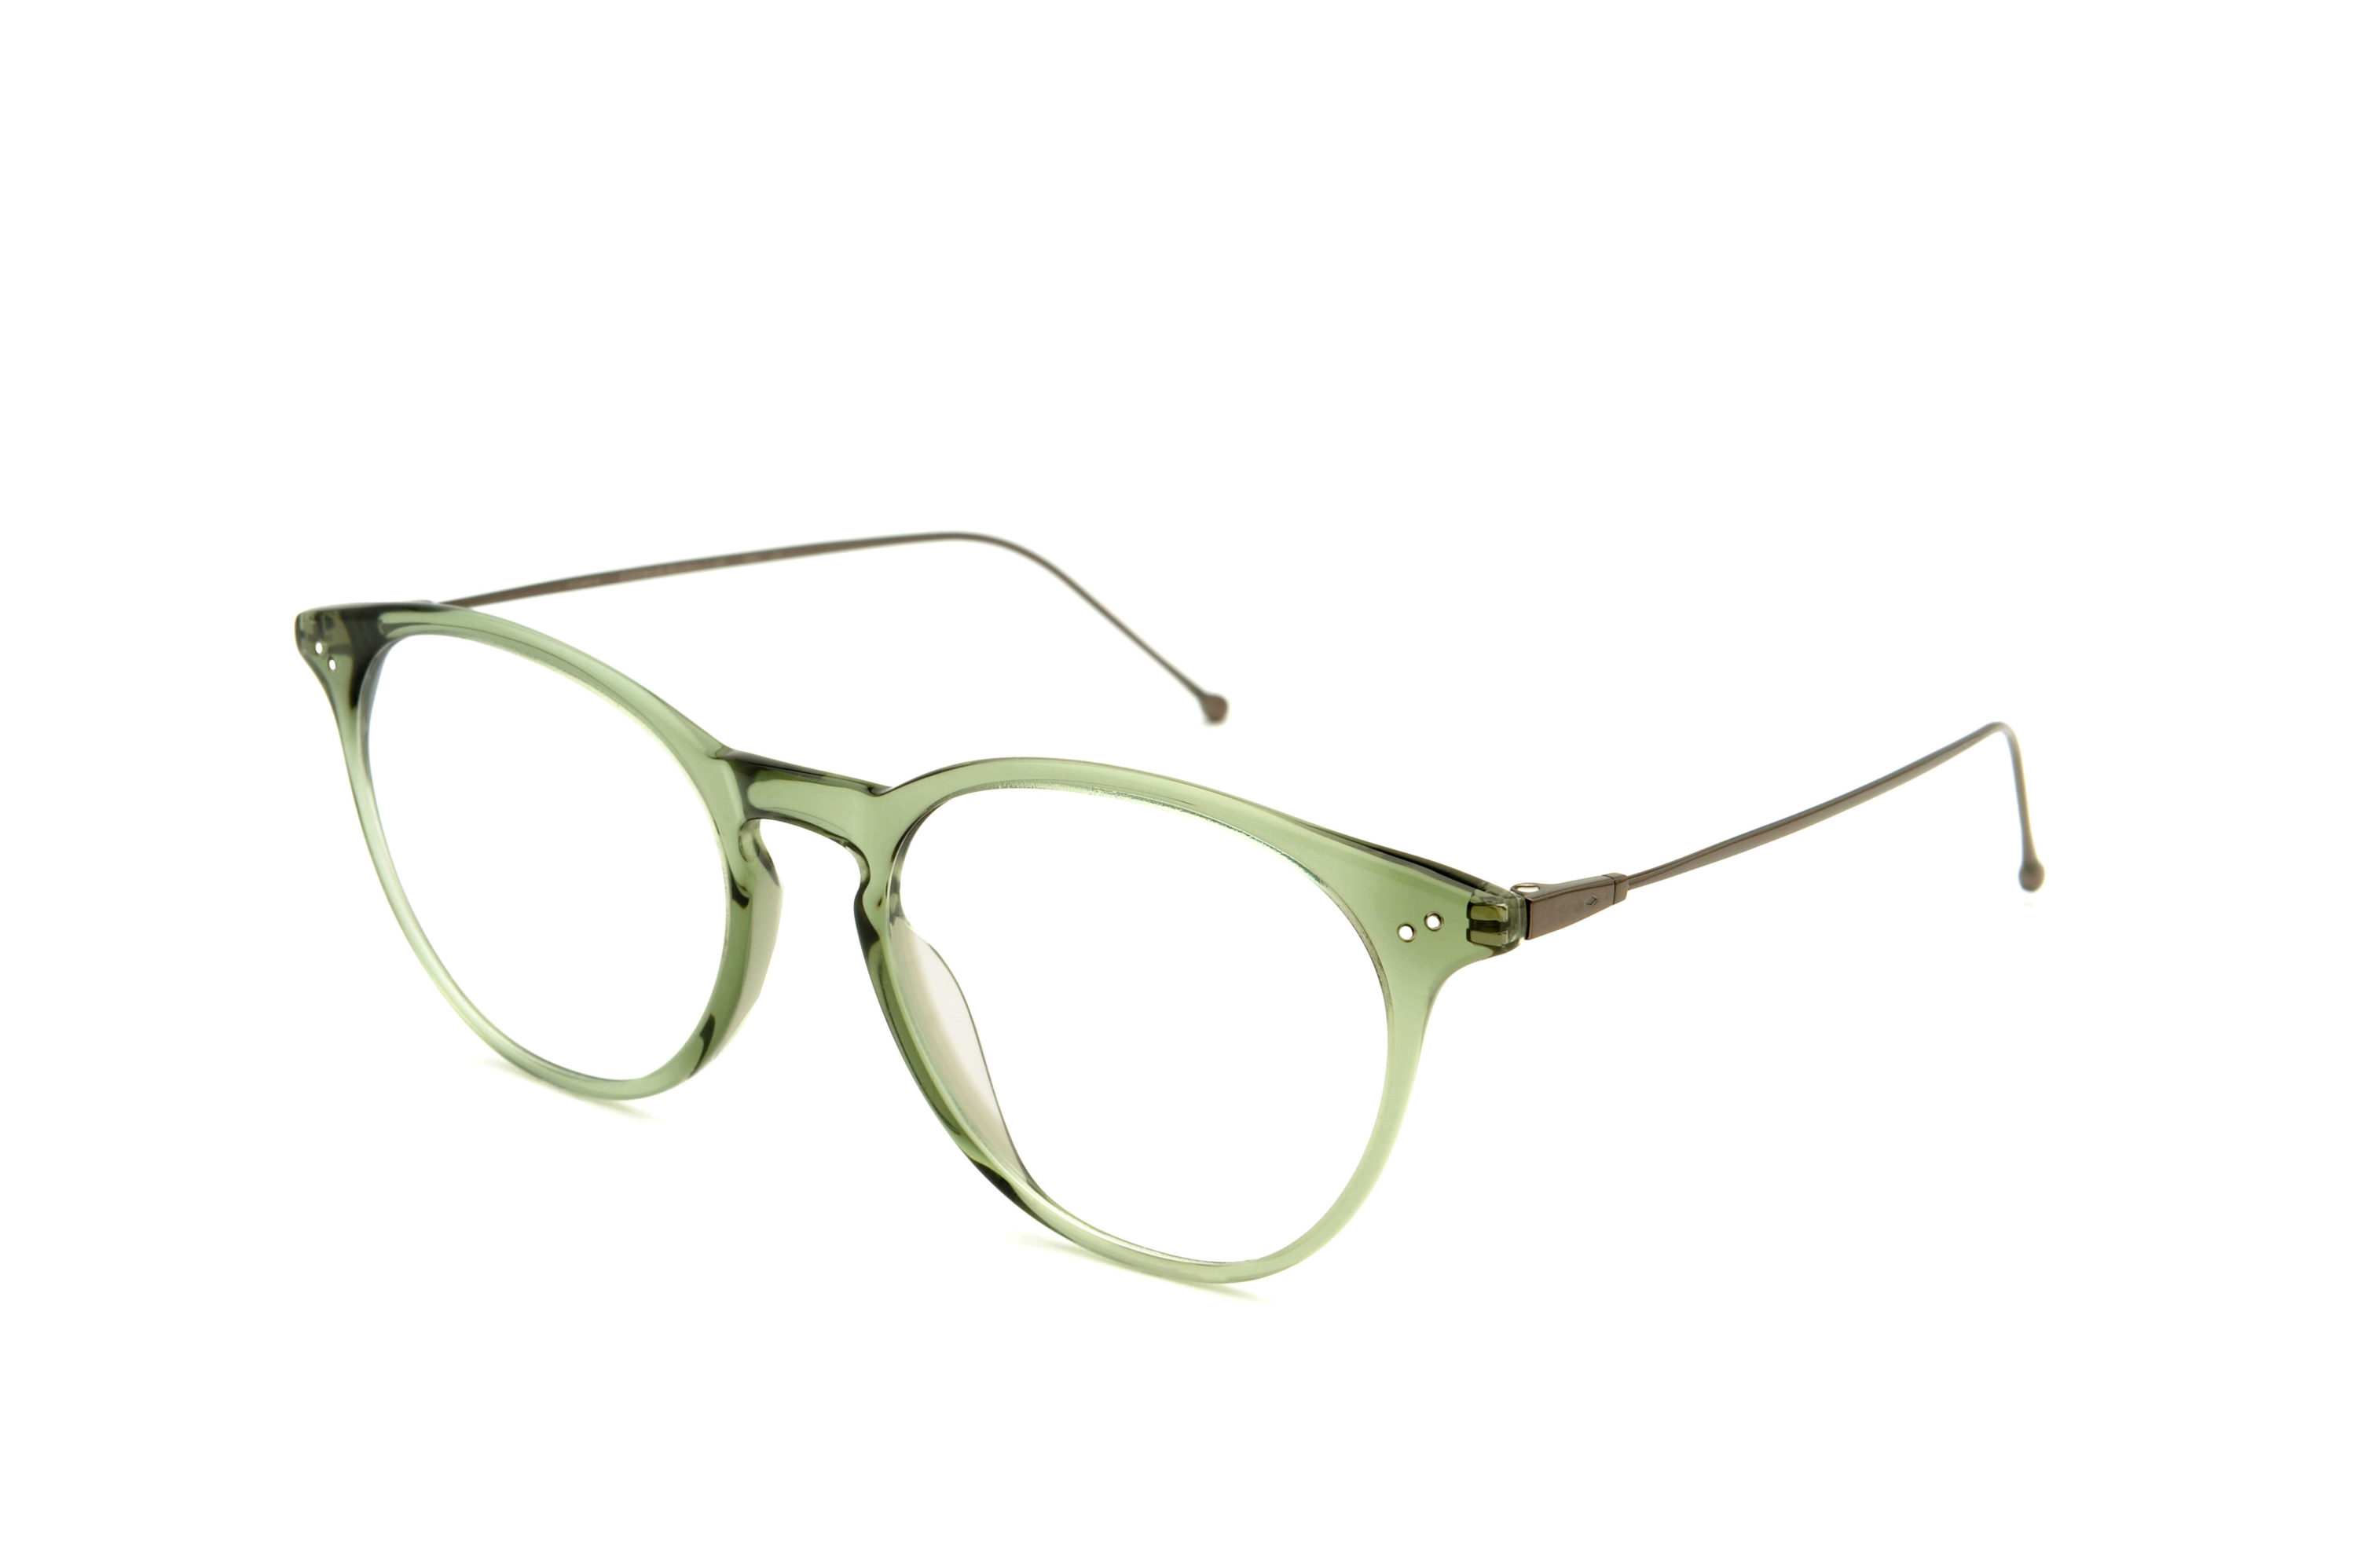 Flow acetate rounded green sunglasses by GIGI Studios